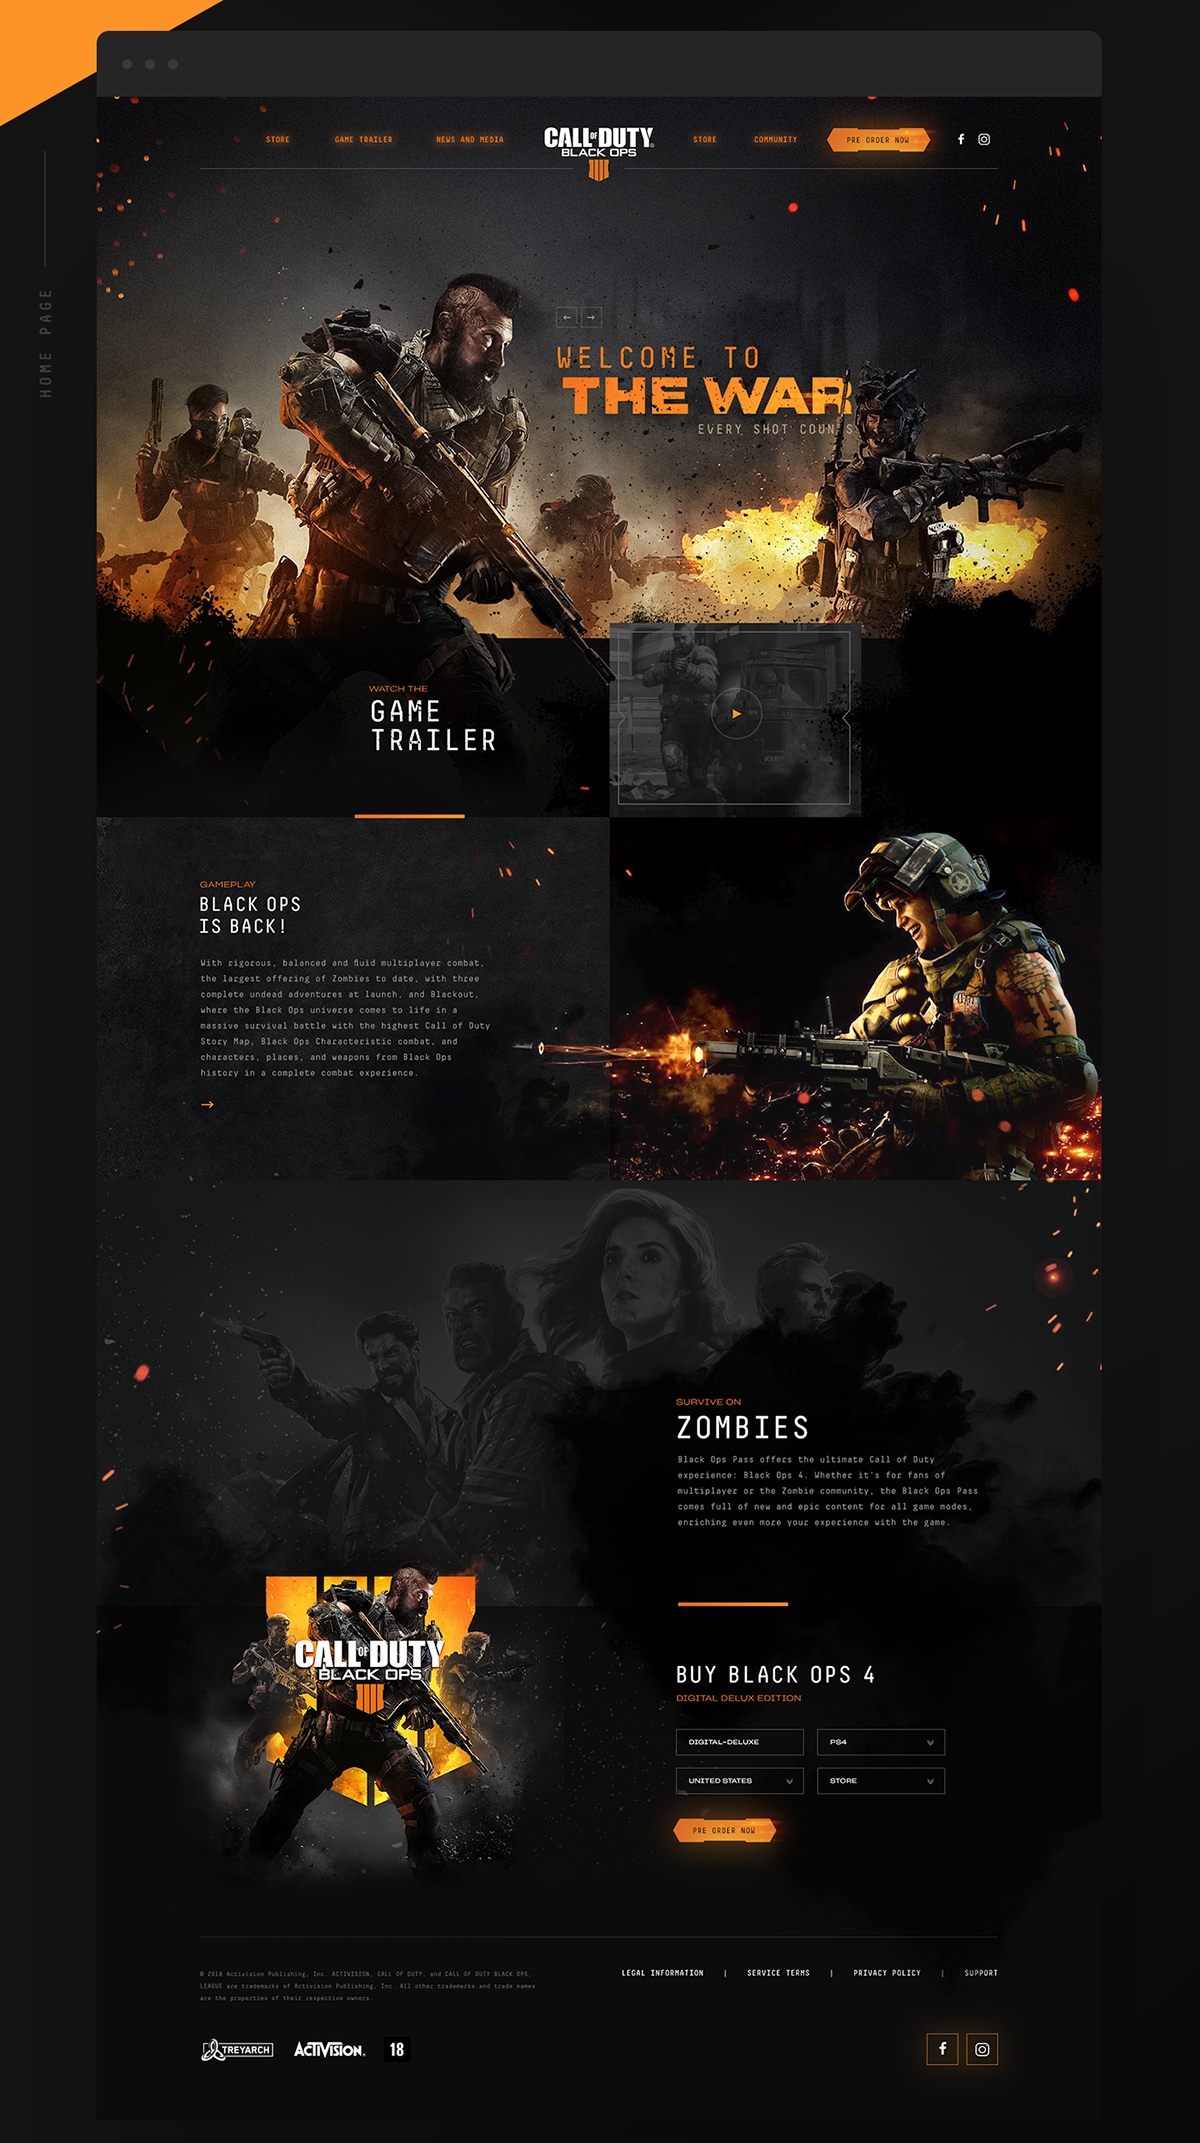 Call Of Duty Black Ops 4 Redesign Concept On Student Show